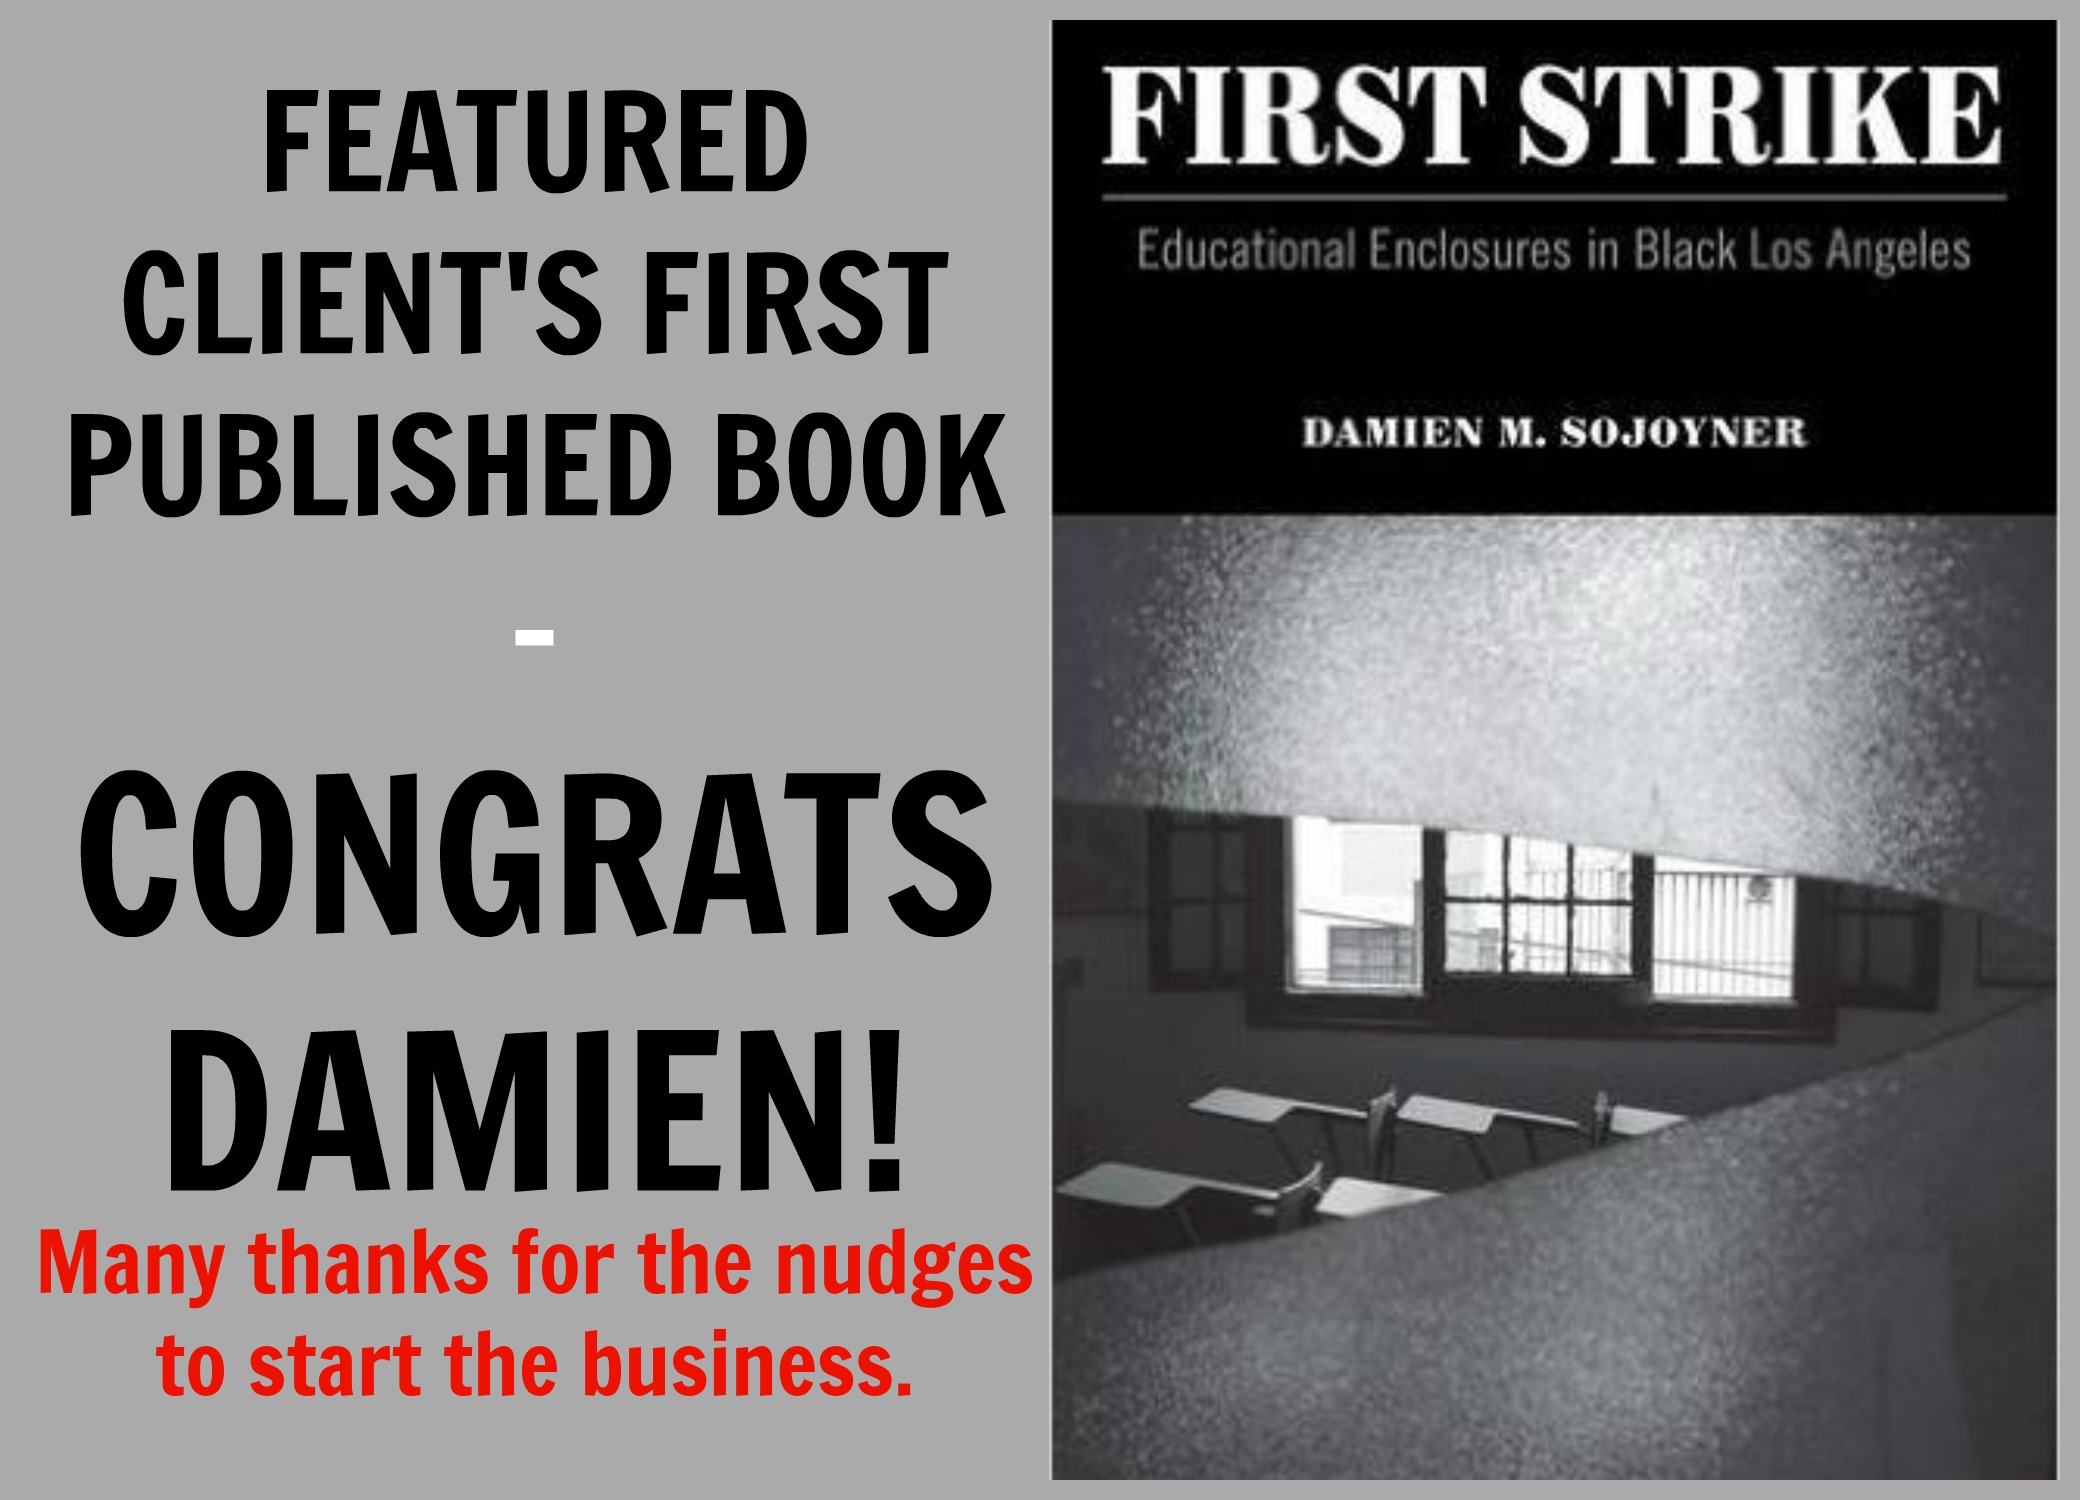 """FIRST STRIKE:  Educational Enclosures in Black Los Angeles   Author: Damien Sojoyner   SYNOPSIS:  California is a state of immense contradictions. Home to colossal wealth and long portrayed as a bastion of opportunity, it also has one of the largest prison populations in the United States and consistently ranks on the bottom of education indexes. Taking a unique, multifaceted insider's perspective, First Strike delves into the root causes of its ever-expansive prison system and disastrous educational policy.  Recentering analysis of Black masculinity beyond public rhetoric, First Strike critiques the trope of the """"school-to-prison pipeline"""" and instead explores the realm of public school as a form of""""enclosure"""" that has influenced the schooling (and denial of schooling) and imprisonment of Black people in California. Through a fascinating ethnography of a public school in Los Angeles County, and a """"day in the life tour"""" of the effect of prisons on the education of Black youth, Damien M. Sojoyner looks at the contestation over education in the Black community from Reconstruction to the civil rights and Black liberation movements of the past three decades.  Policy makers, school districts, and local governments have long known that there is a relationship between high incarceration rates and school failure. First Strike is the first book that demonstrates why that connection exists and shows how school districts, cities and states have been complicit and can reverse a disturbing and needless trend. Rather than rely upon state-sponsored ideological or policy-driven models that do nothing more than to maintain structures of hierarchal domination, it allows us to resituate our framework of understanding and begin looking for solutions in spaces that are readily available and are immersed in radically democratic social visions of the future.   Check it out."""